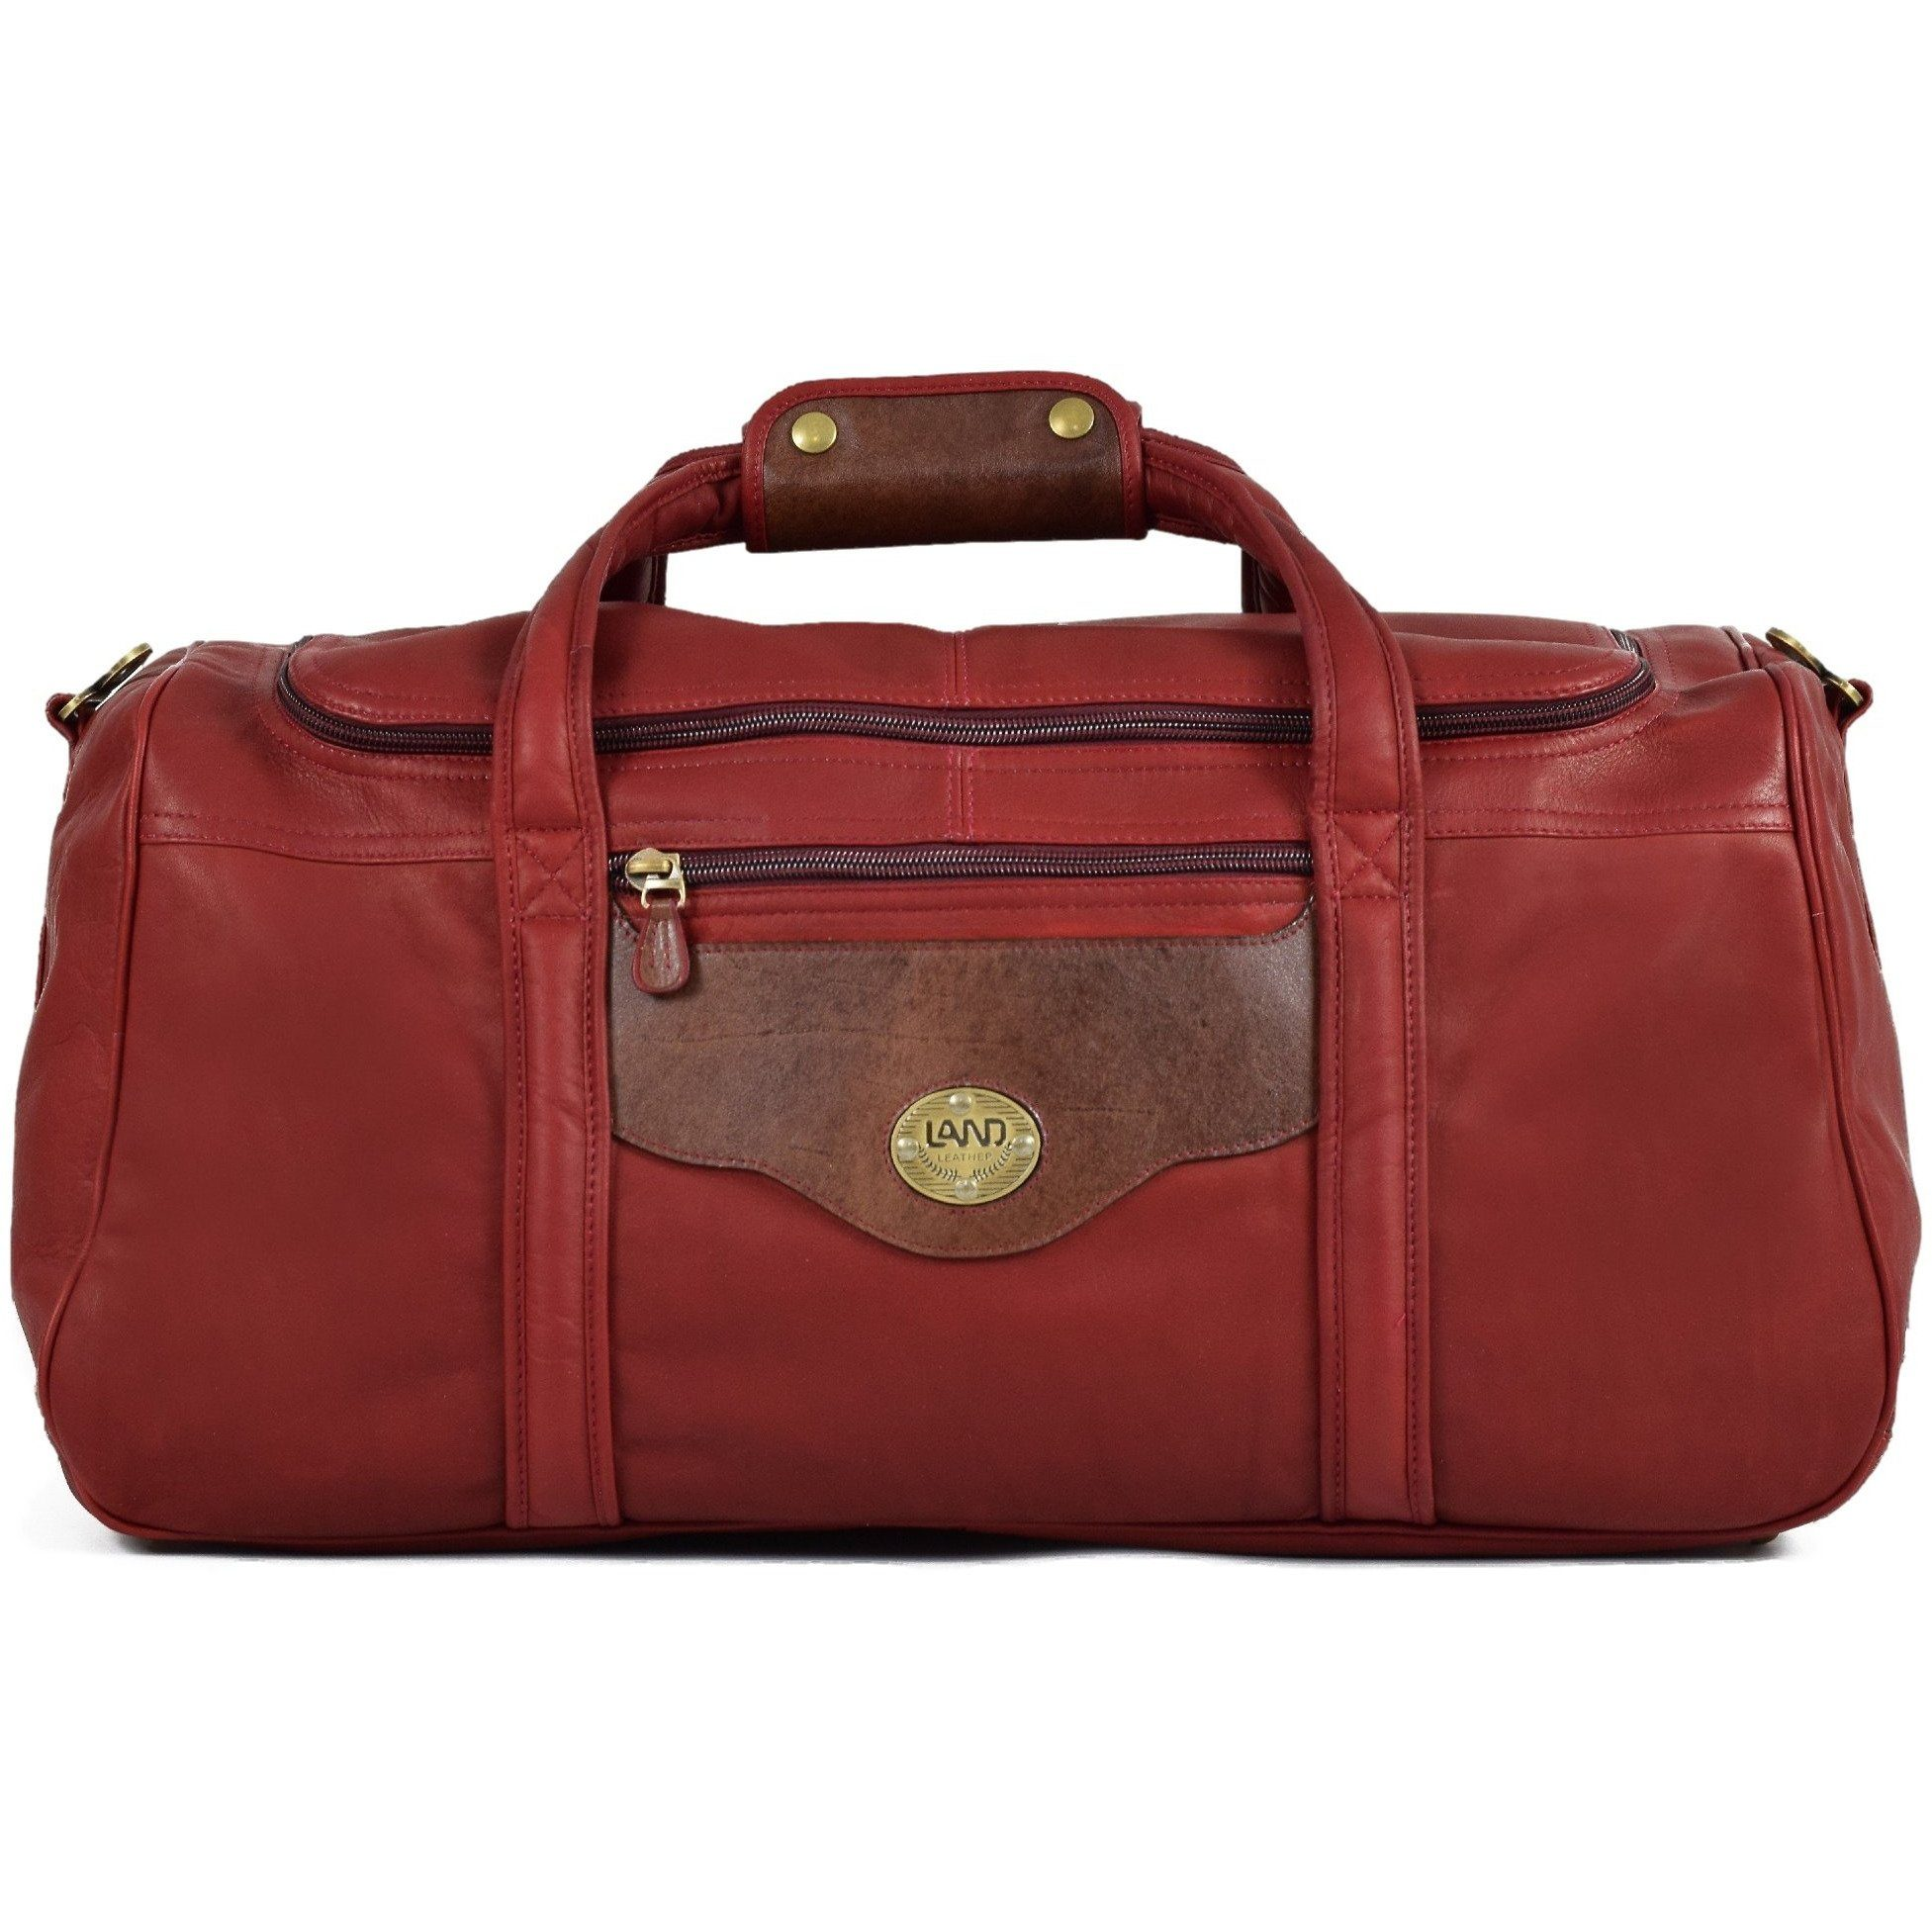 Anniversary San Fran Duffel Bag // Backordered, Duffel Bag | LAND Leather